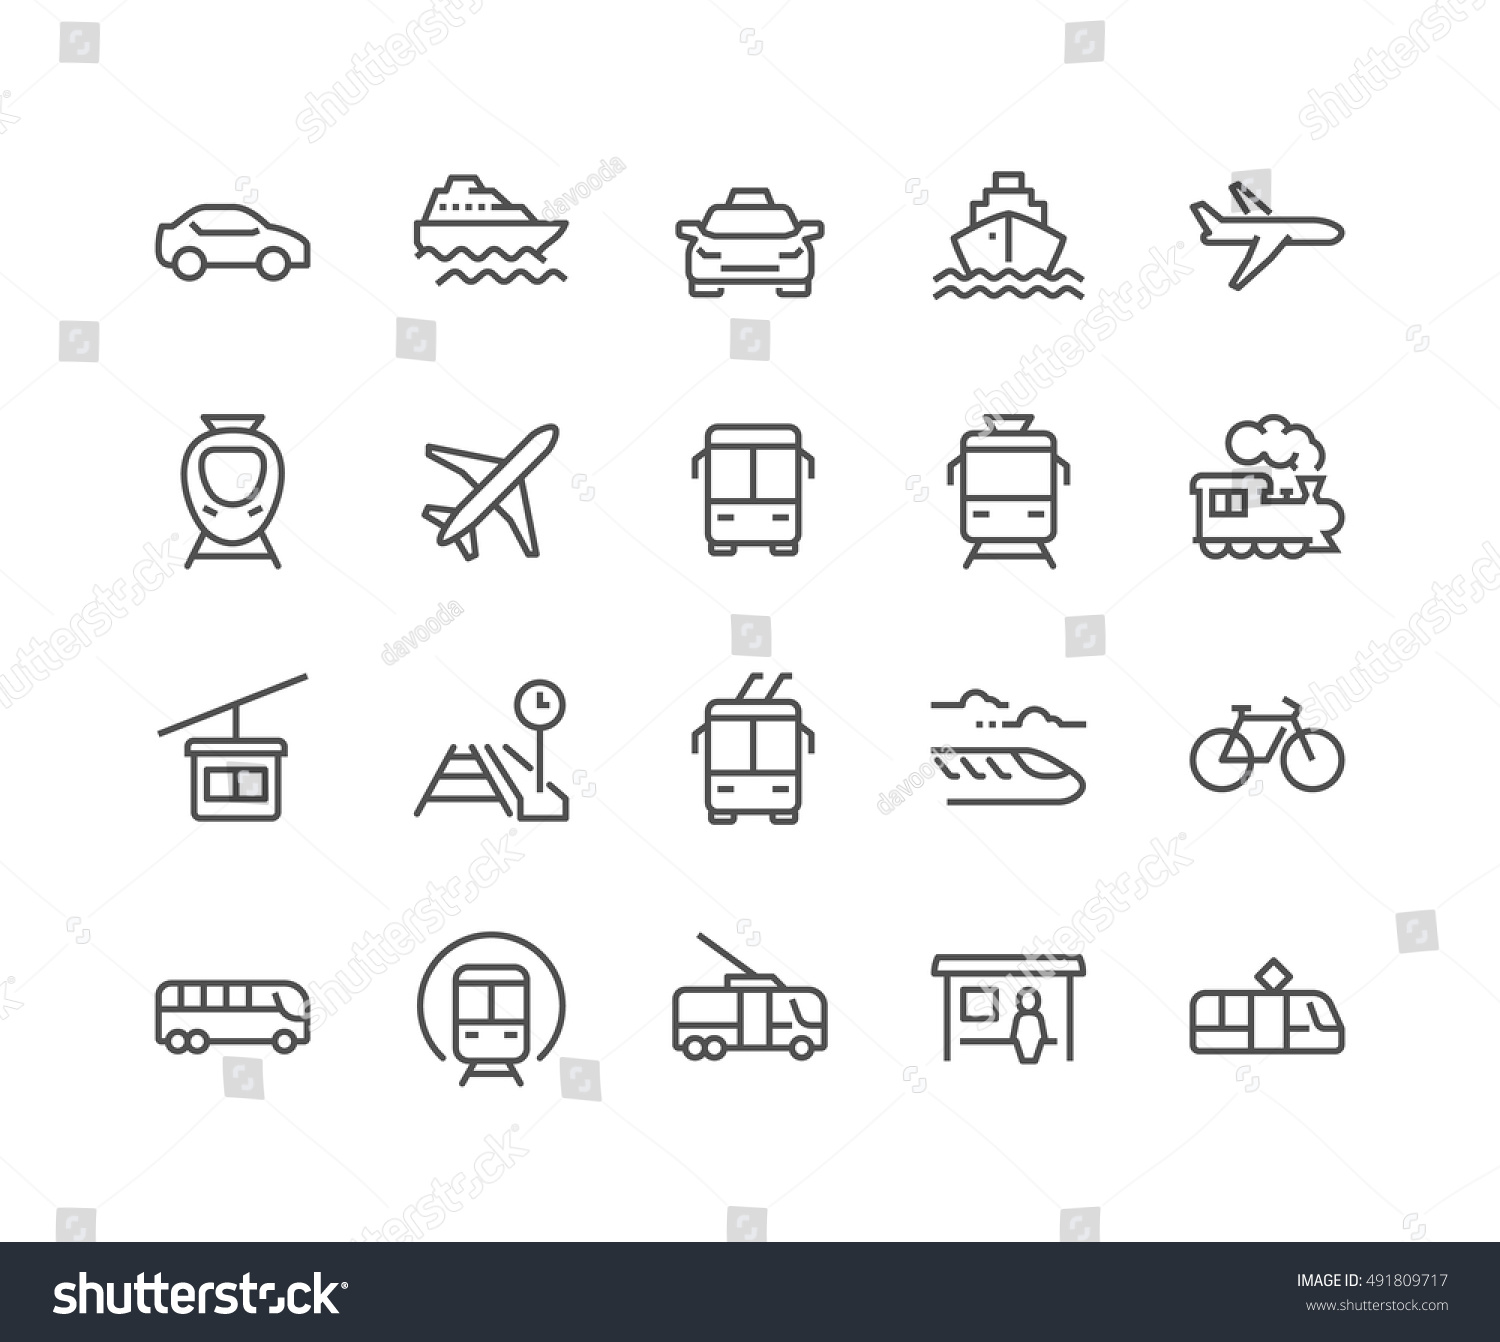 Simple Set of Public Transport Related Vector Line Icons.  Contains such Icons as Taxi, Train, Tram and more. Editable Stroke. 48x48 Pixel Perfect. #491809717